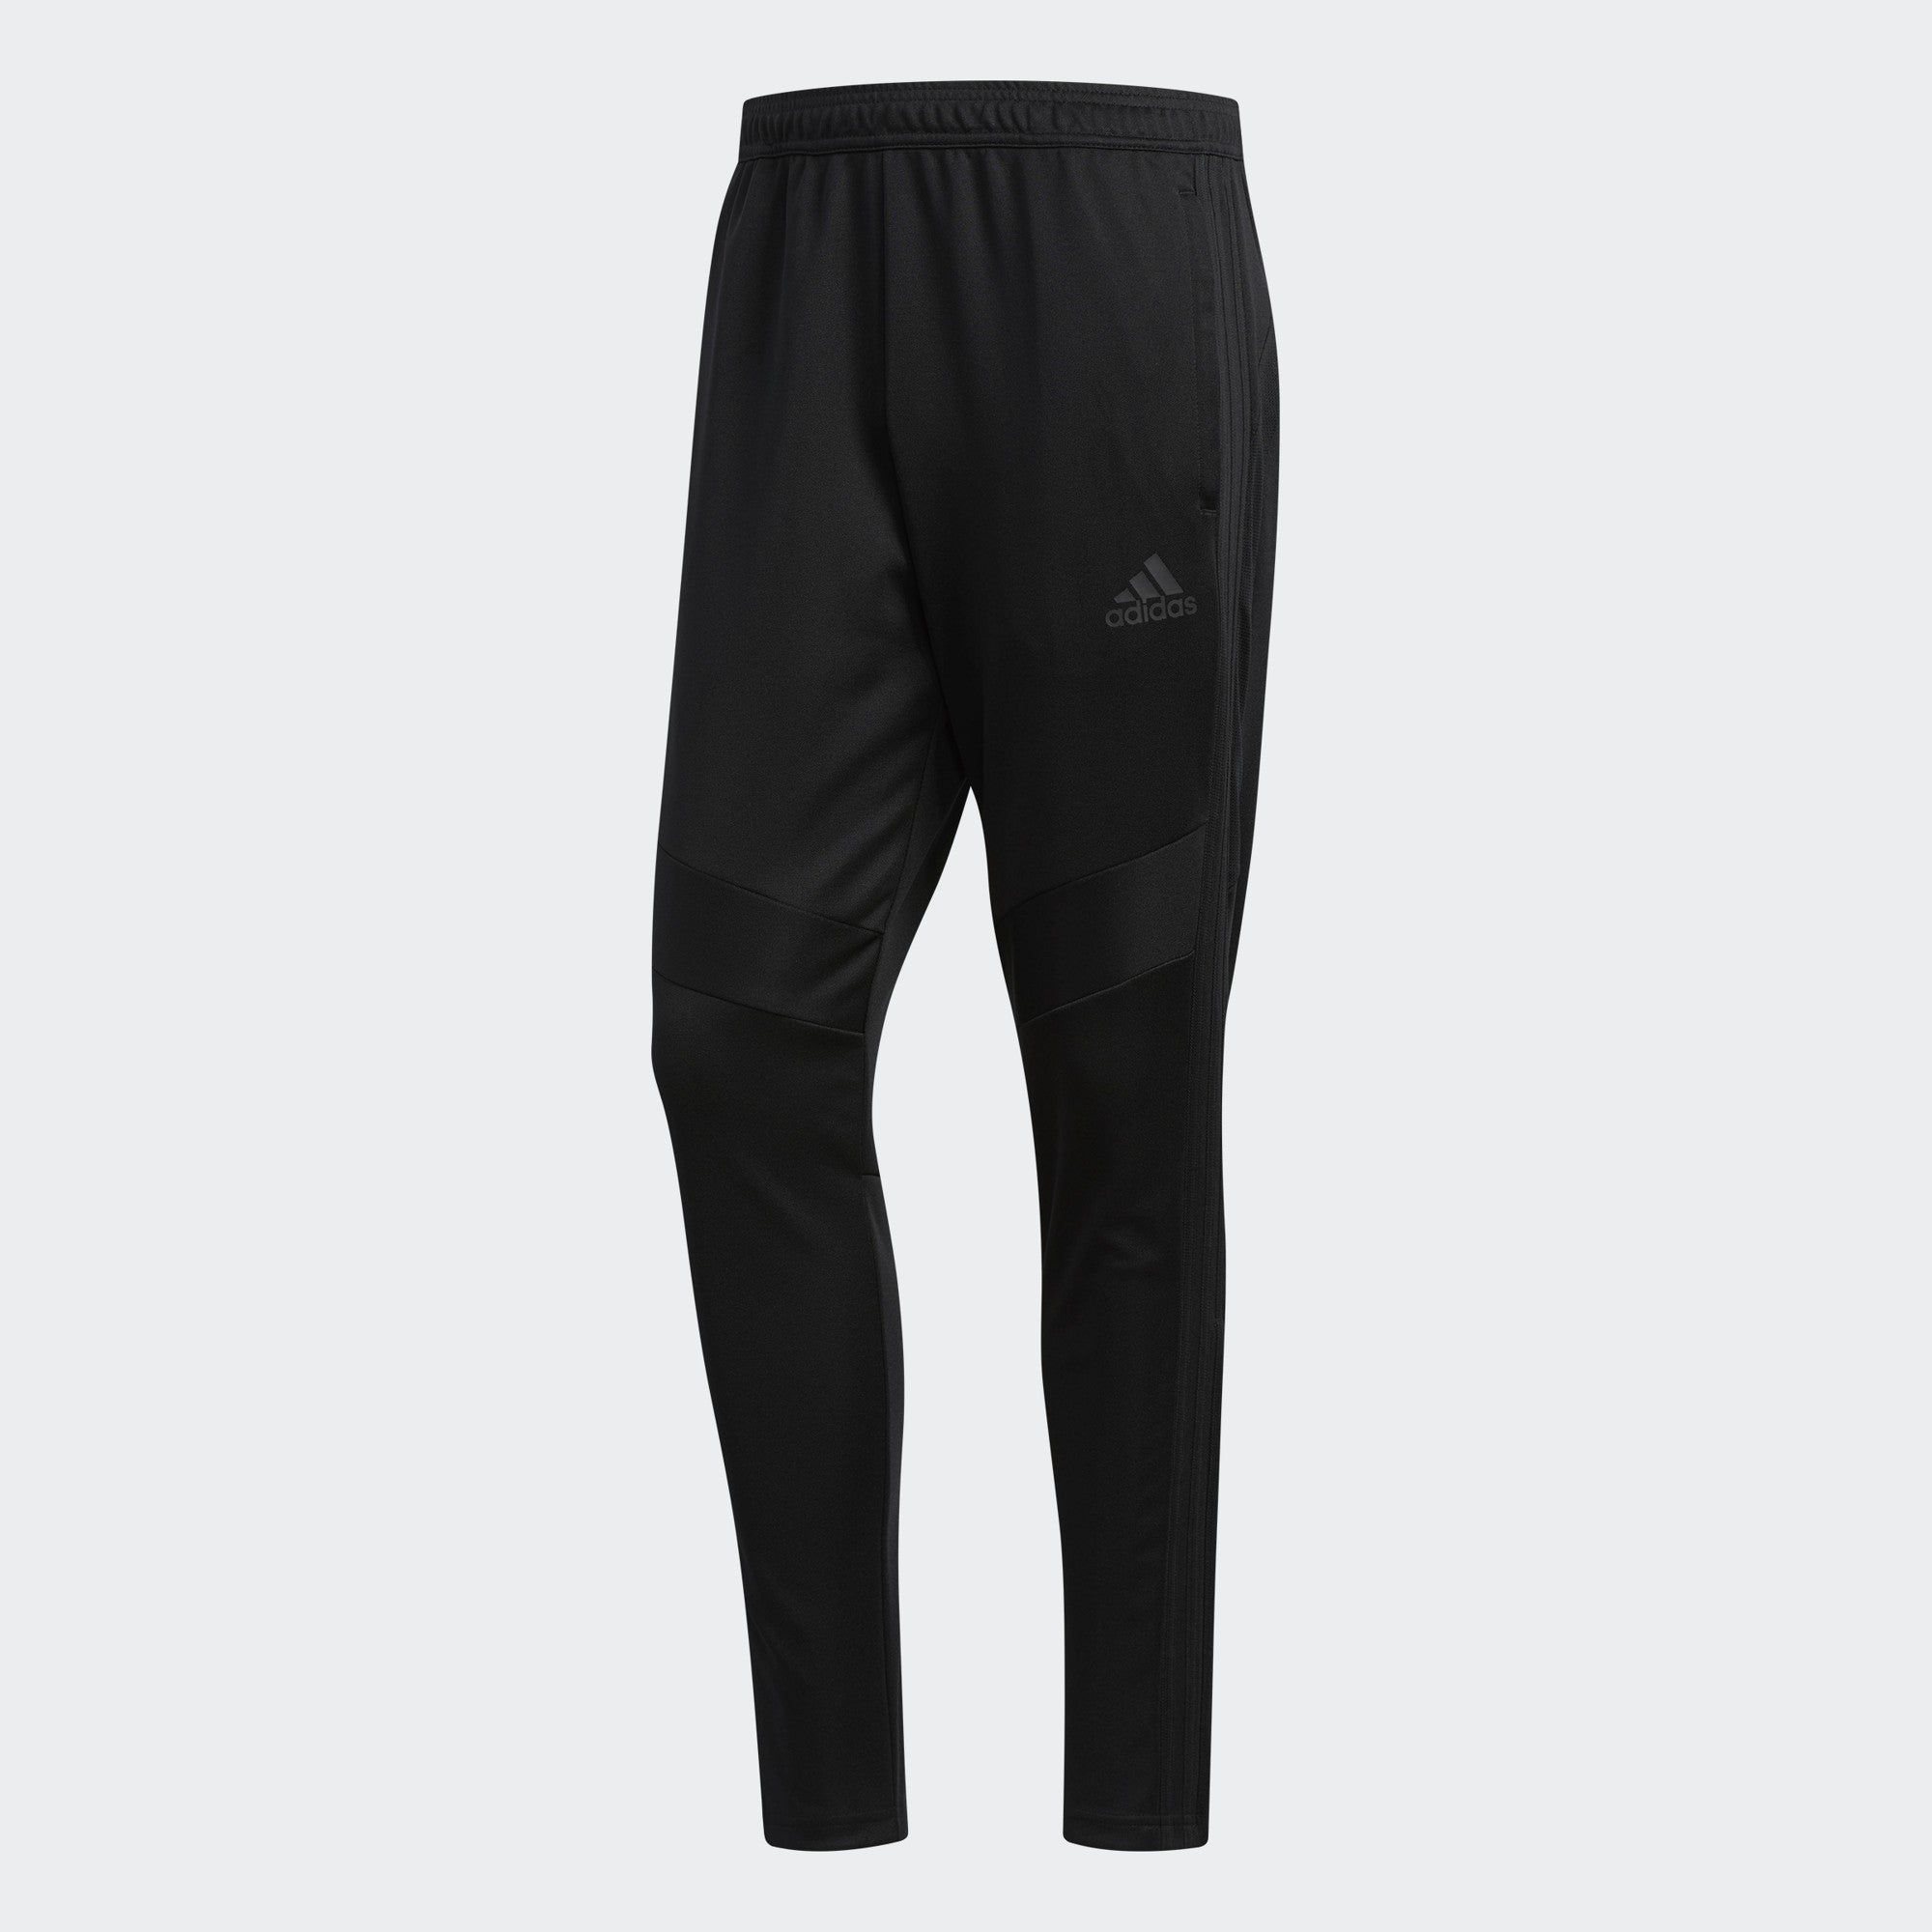 Men's Tiro 19 Training Pants - Black/Black